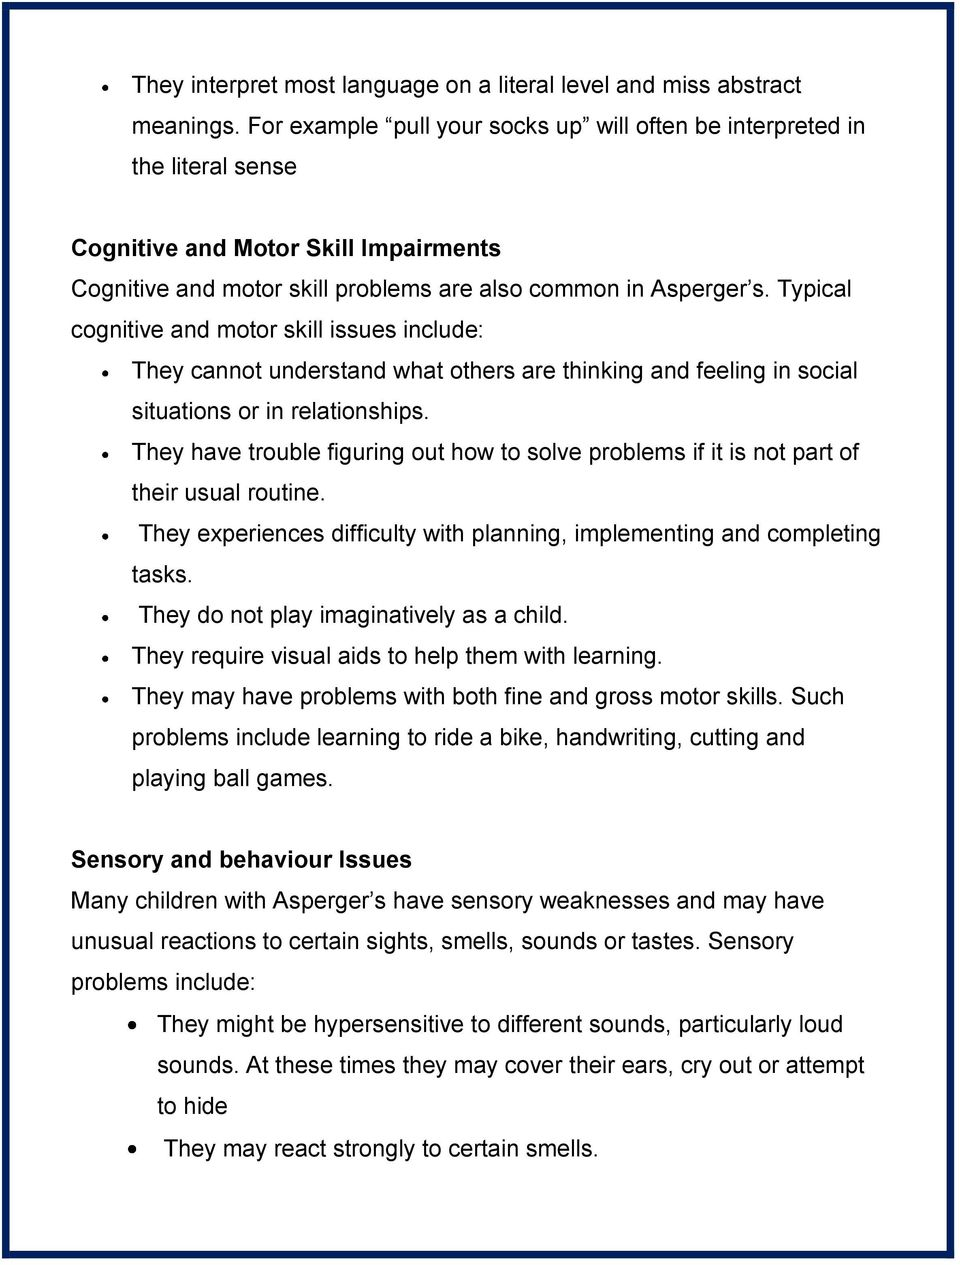 Typical cognitive and motor skill issues include: They cannot understand what others are thinking and feeling in social situations or in relationships.